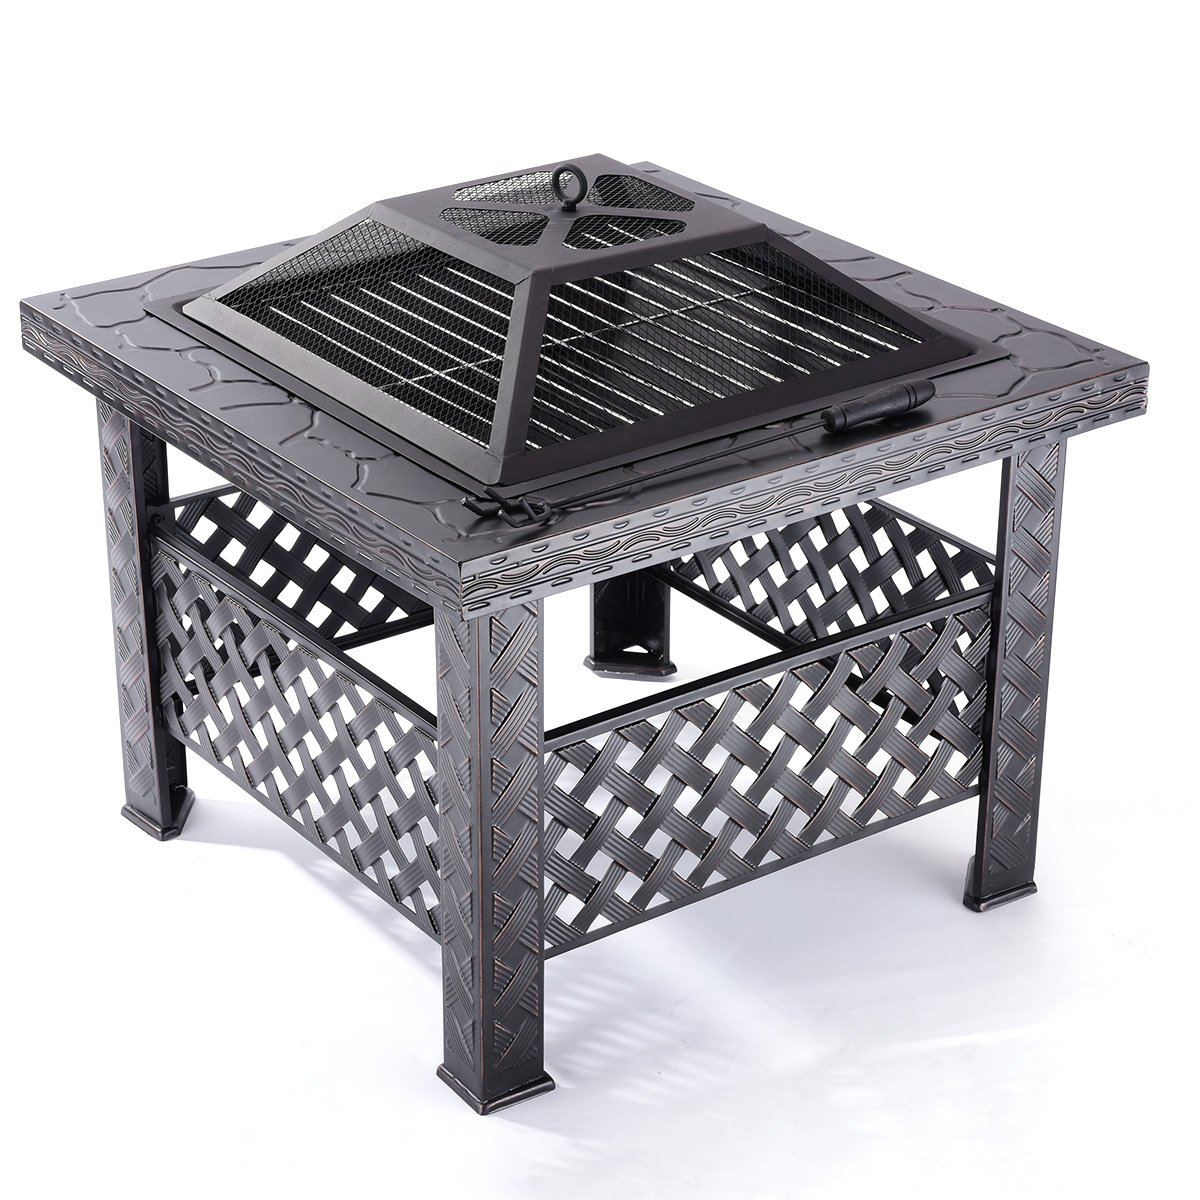 Qisan Fire Pit 26'' Square Fire Pit Table Outdoor Grill Backyard Patio Garden Charcoal Stove by